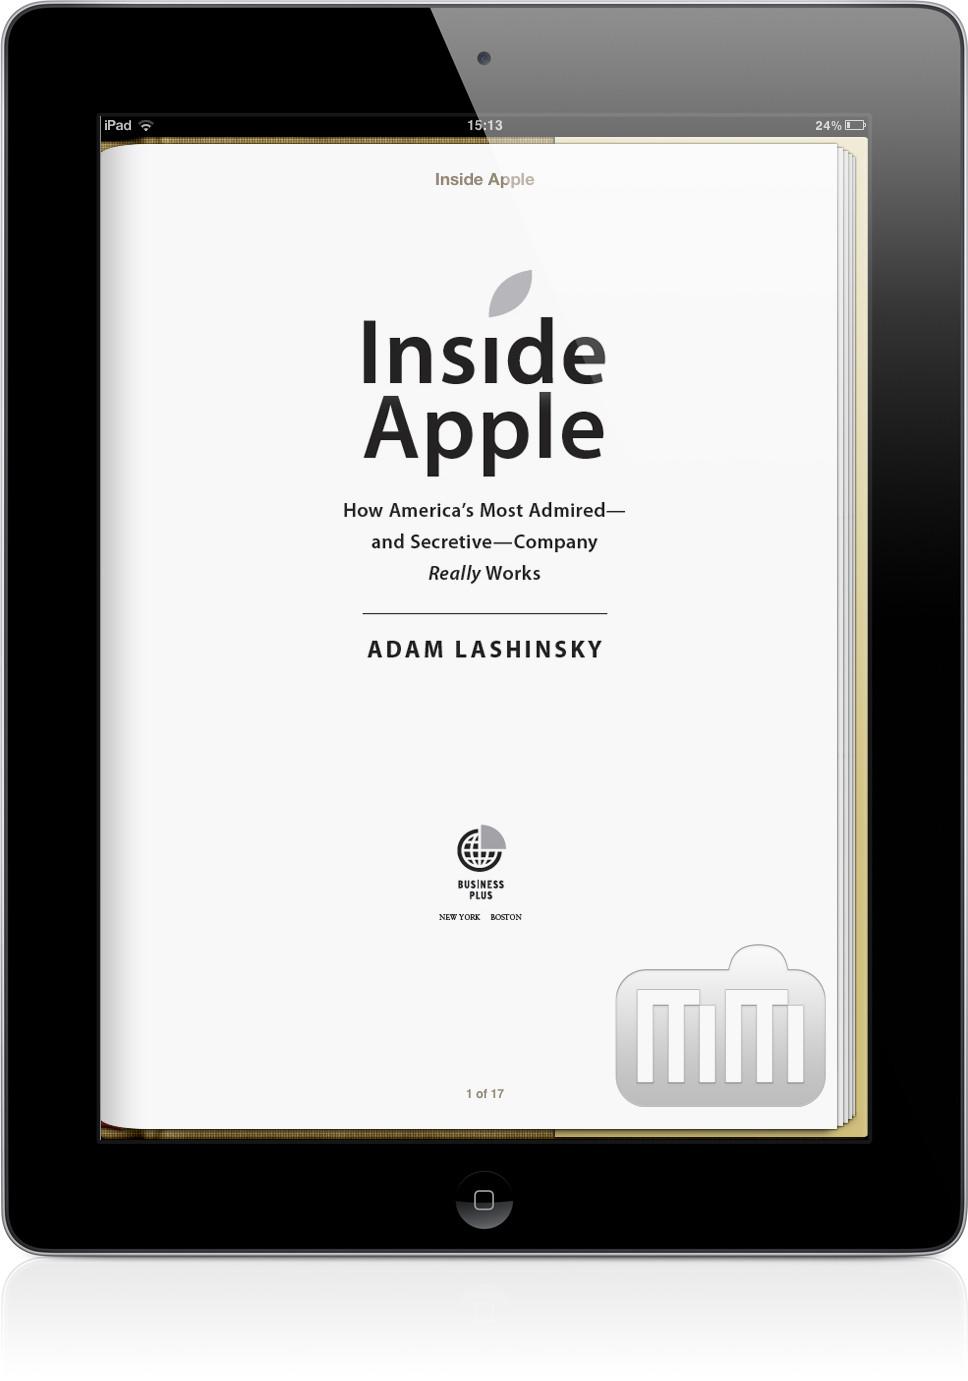 Livro Inside Apple no iPad